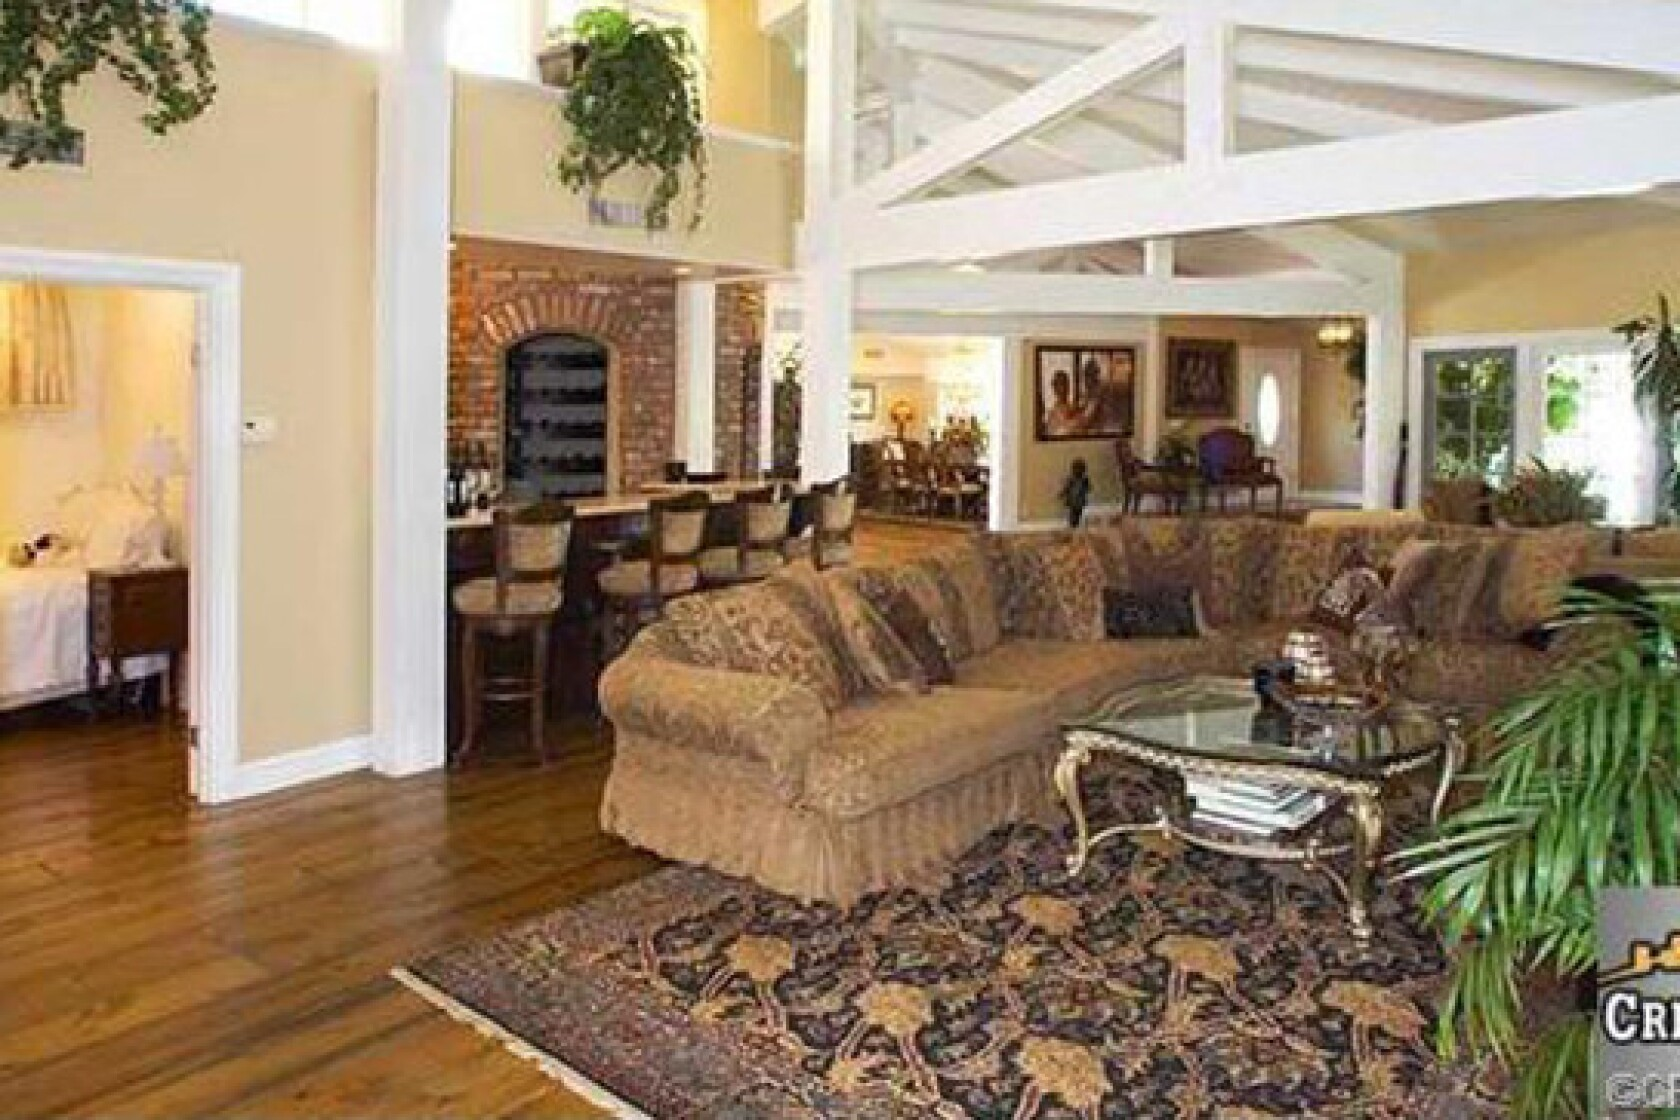 Miley Cyrus quietly unloads her Hidden Hills ranch for $5 ... on mediterranean house plans, craftsman house plans, duplex house plans, beach house plans, split level house plans, cottage house plans, farmhouse house plans, bungalow house plans, raised small house plans, chalet house plans, saltbox house plans, contemporary house plans, colonial house plans, rustic architecture house plans, traditional house plans, victorian house plans, french country house plans, townhouse house plans, tri-level house plans,